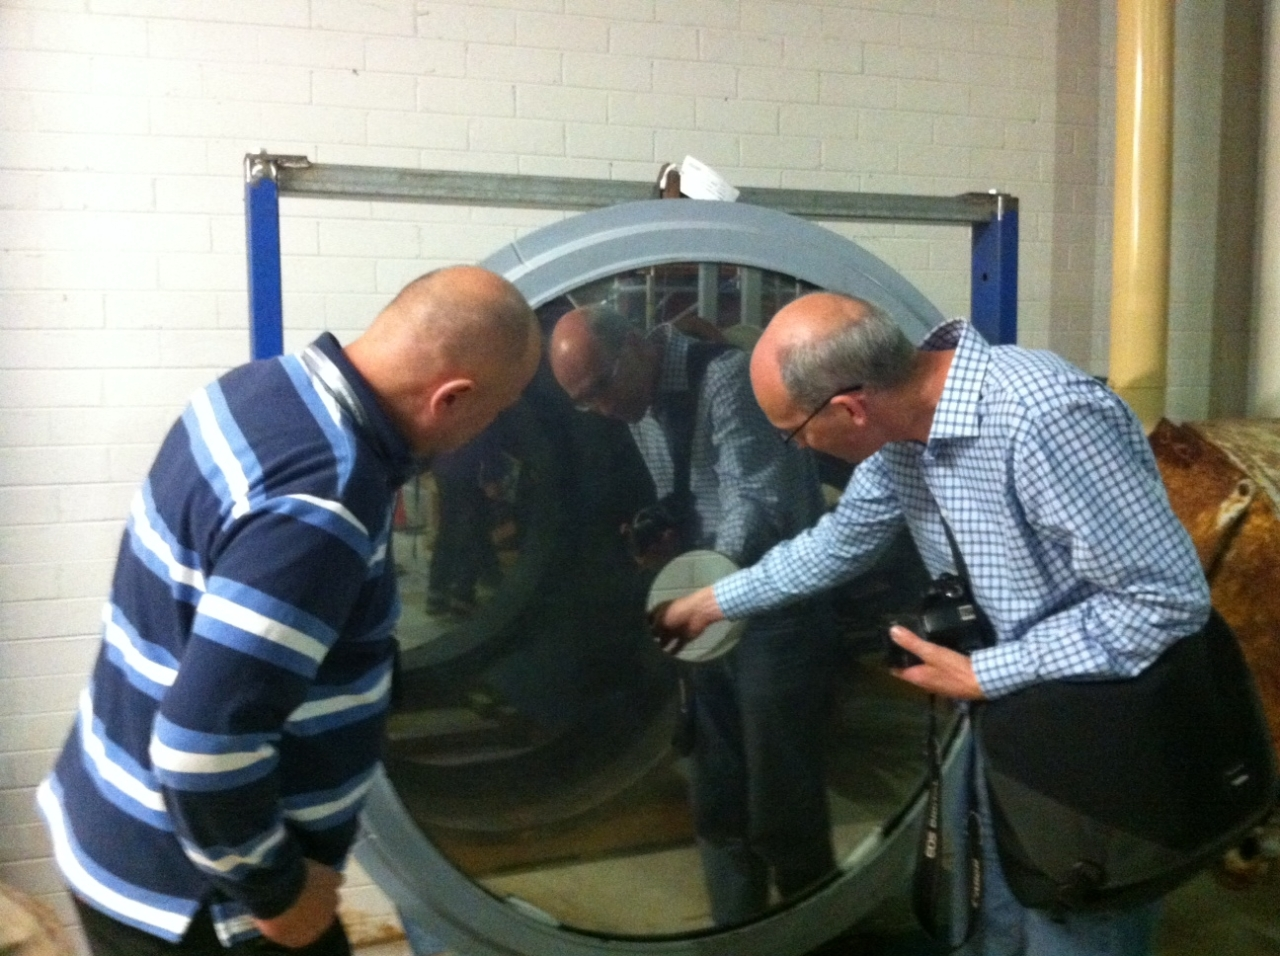 Two men inspect a large circular mirror